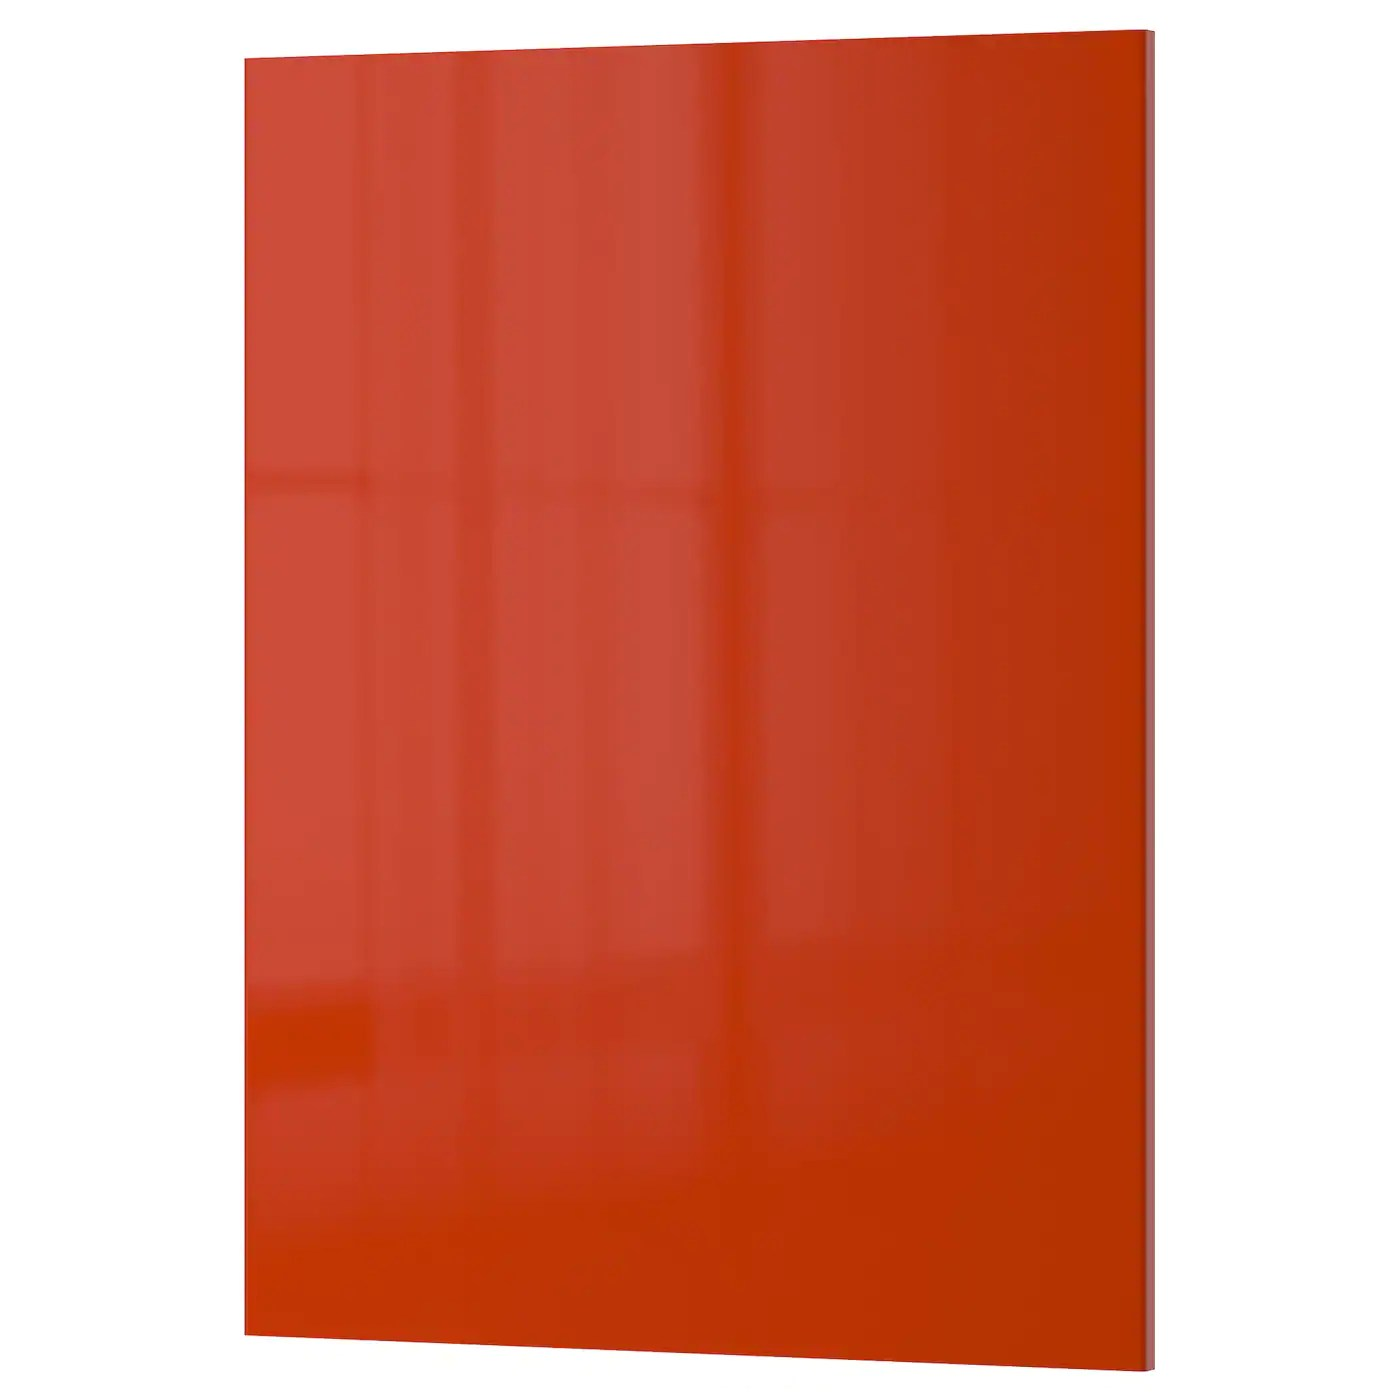 Küche Orange Hochglanz JÄrsta Door High Gloss Orange 60x80 Cm Ikea